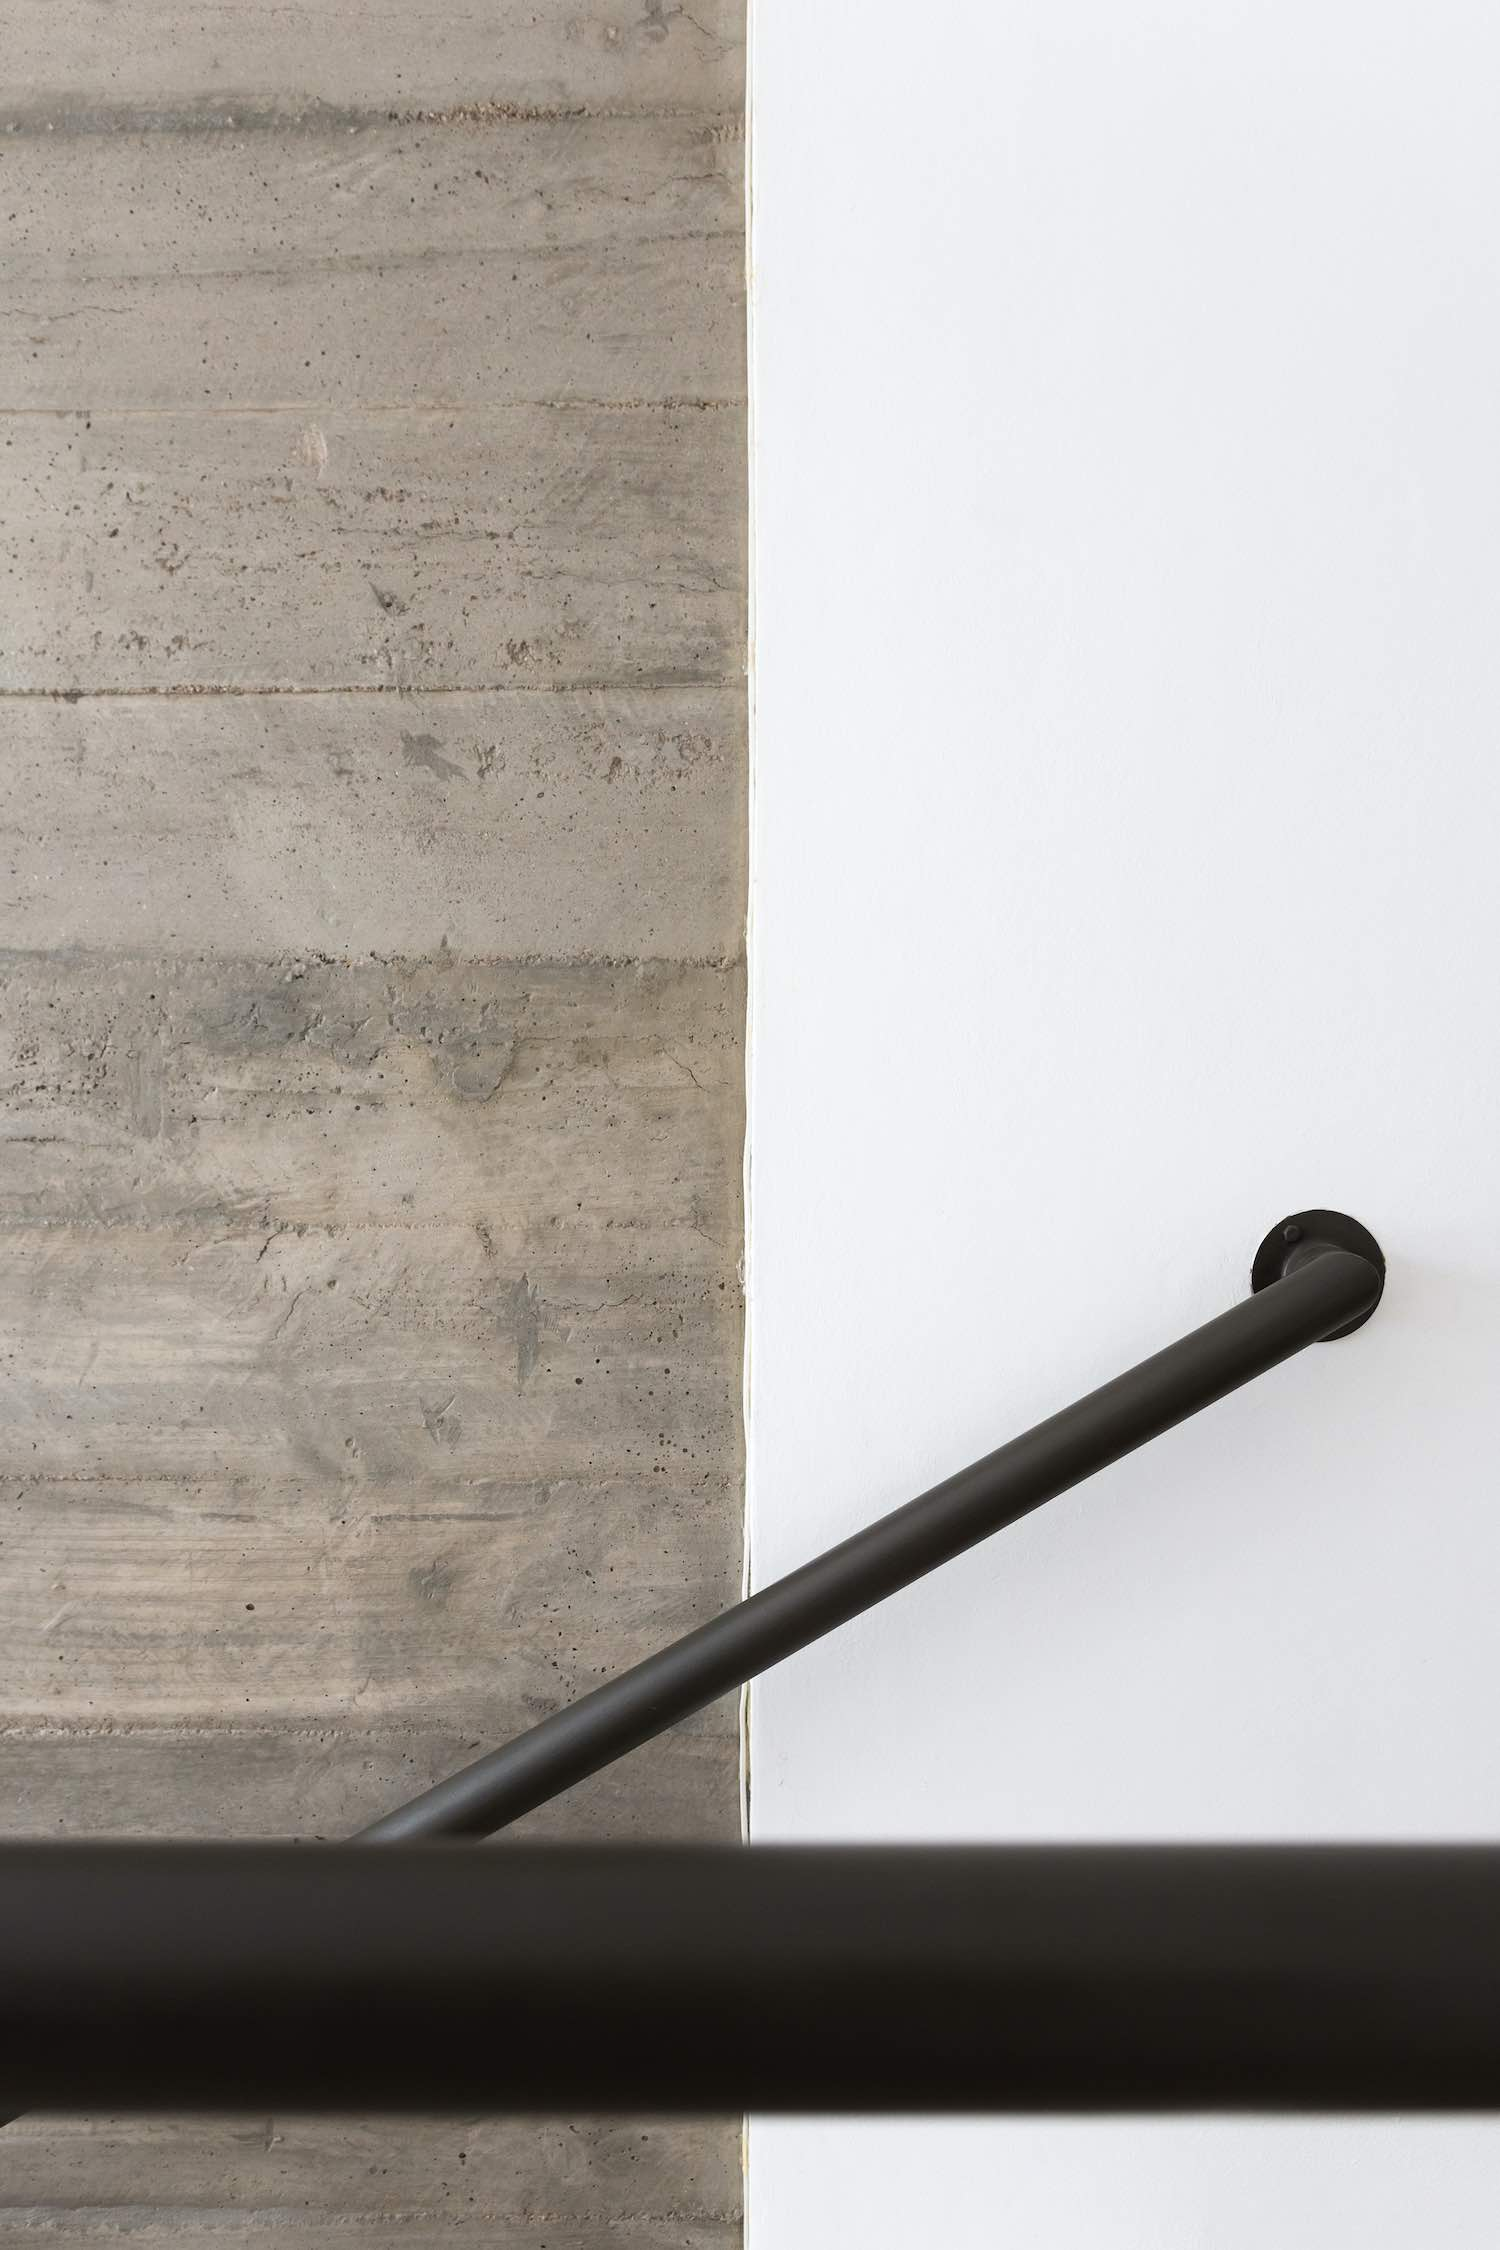 concrete and handrail detail